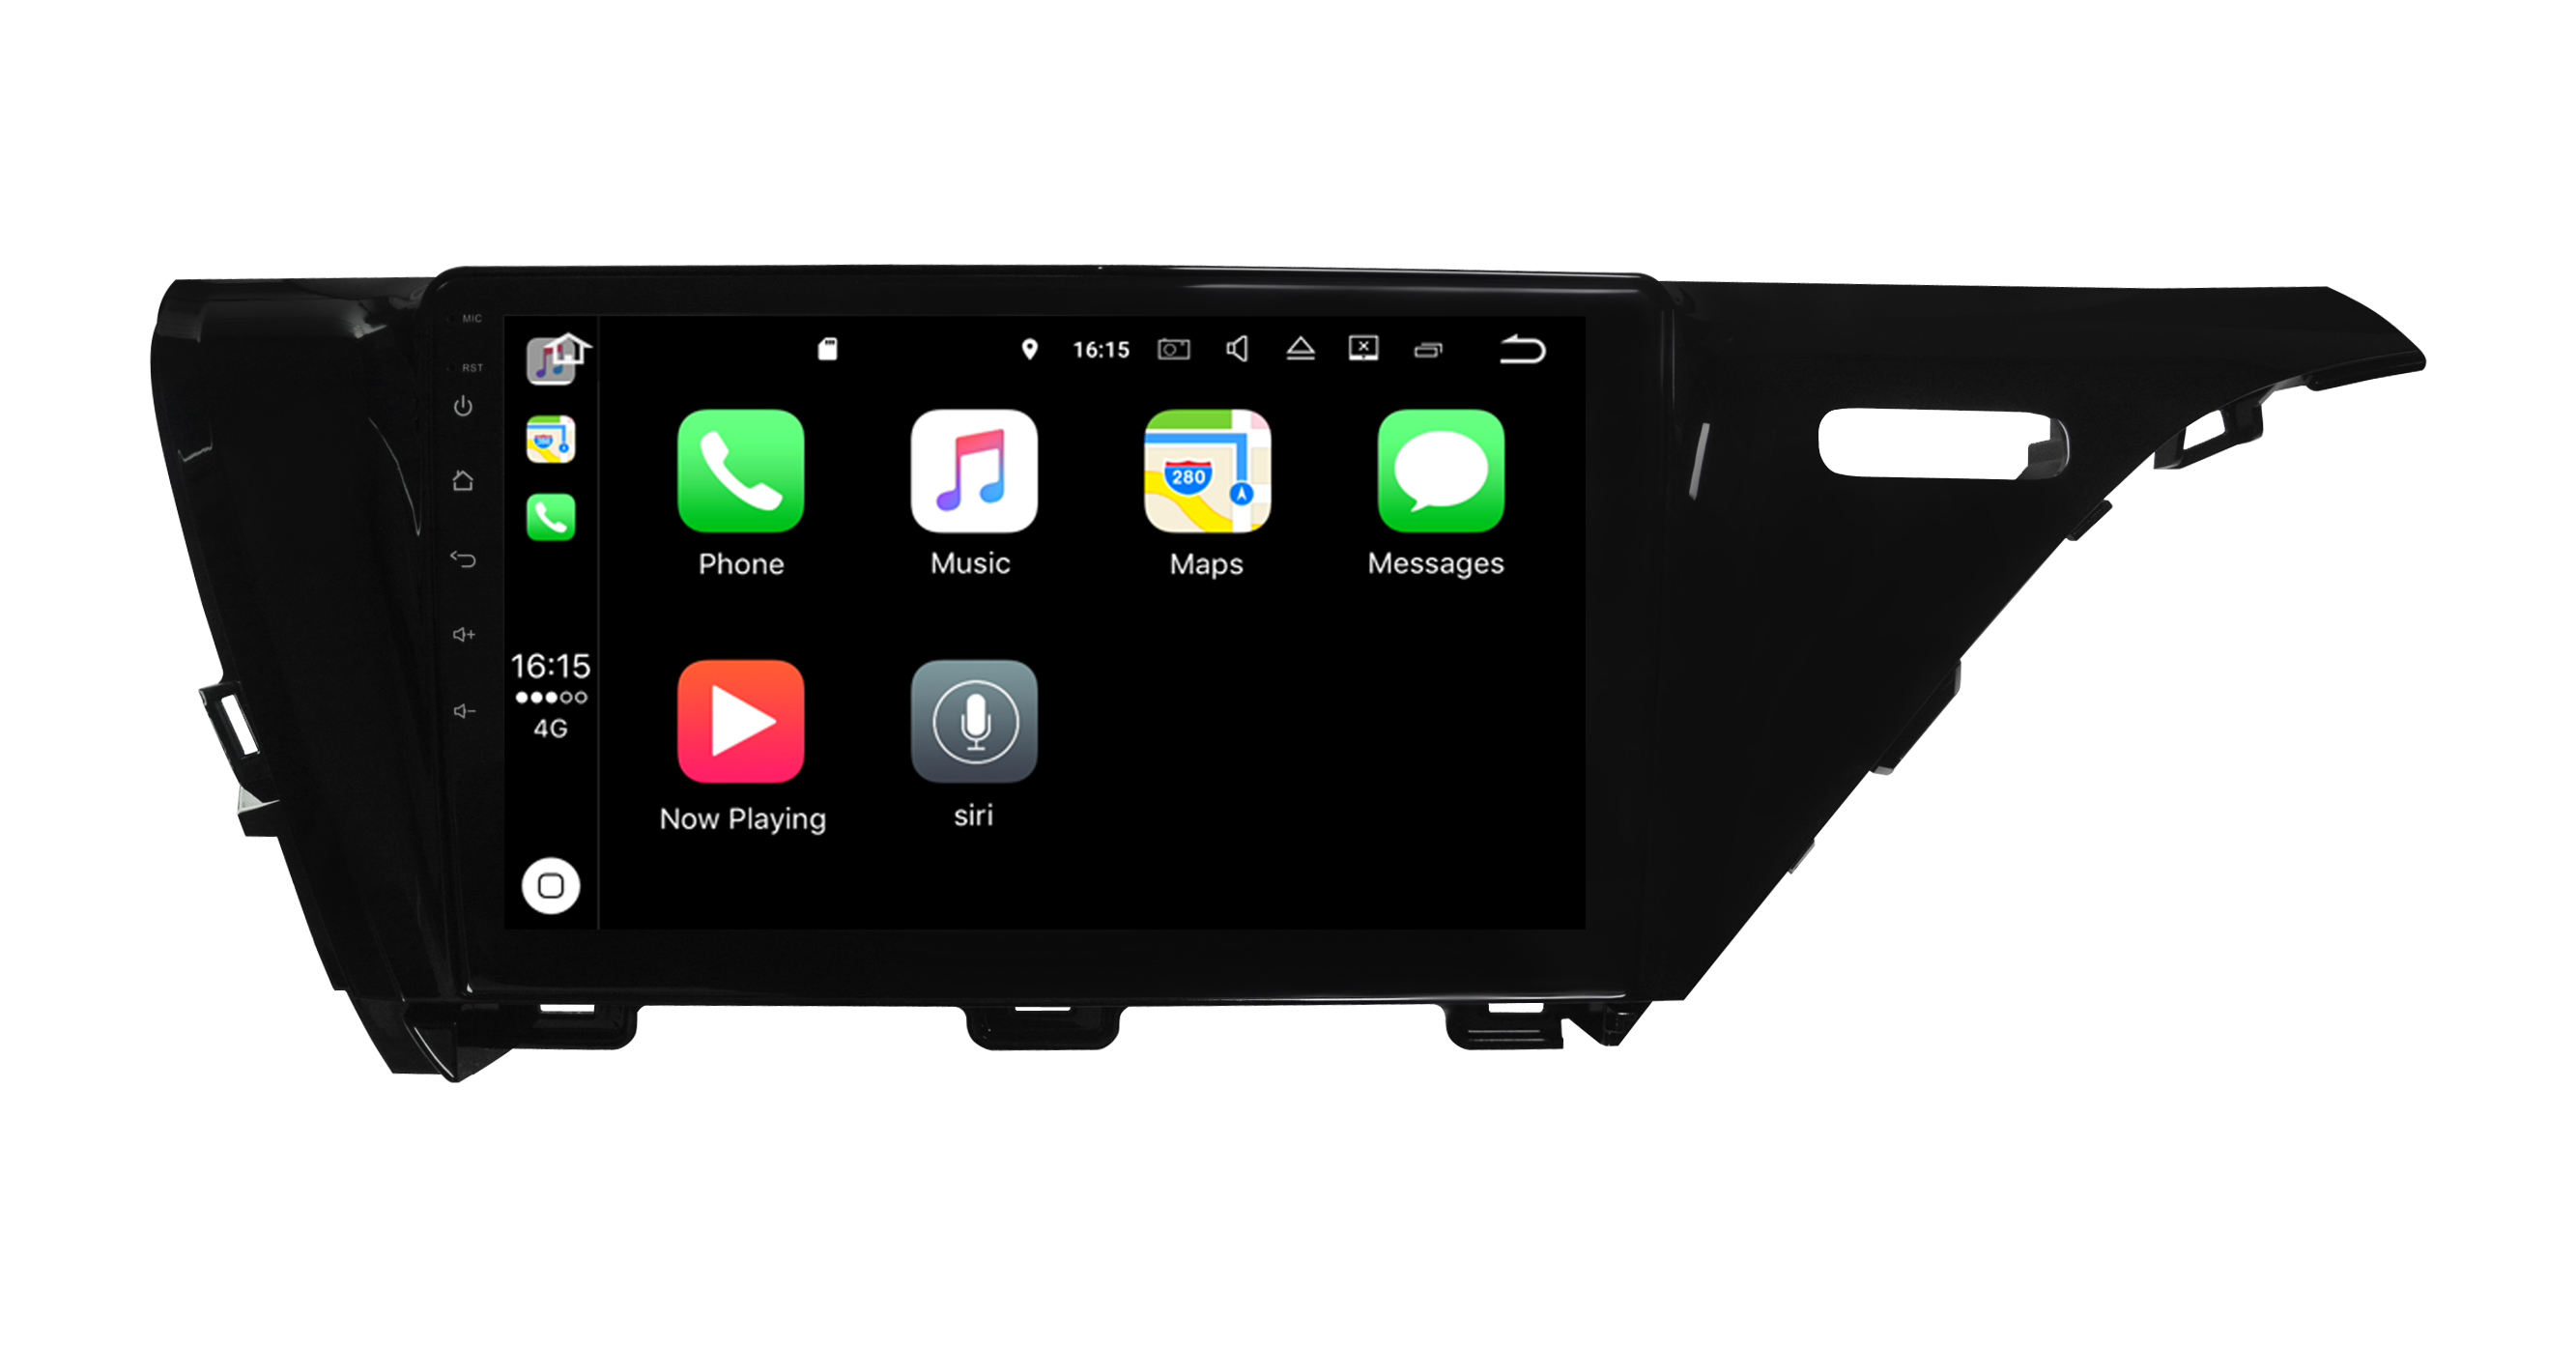 2018 Toyota Camry Carplay Gps Support APPle CarPlay, Carlife, Android Auto